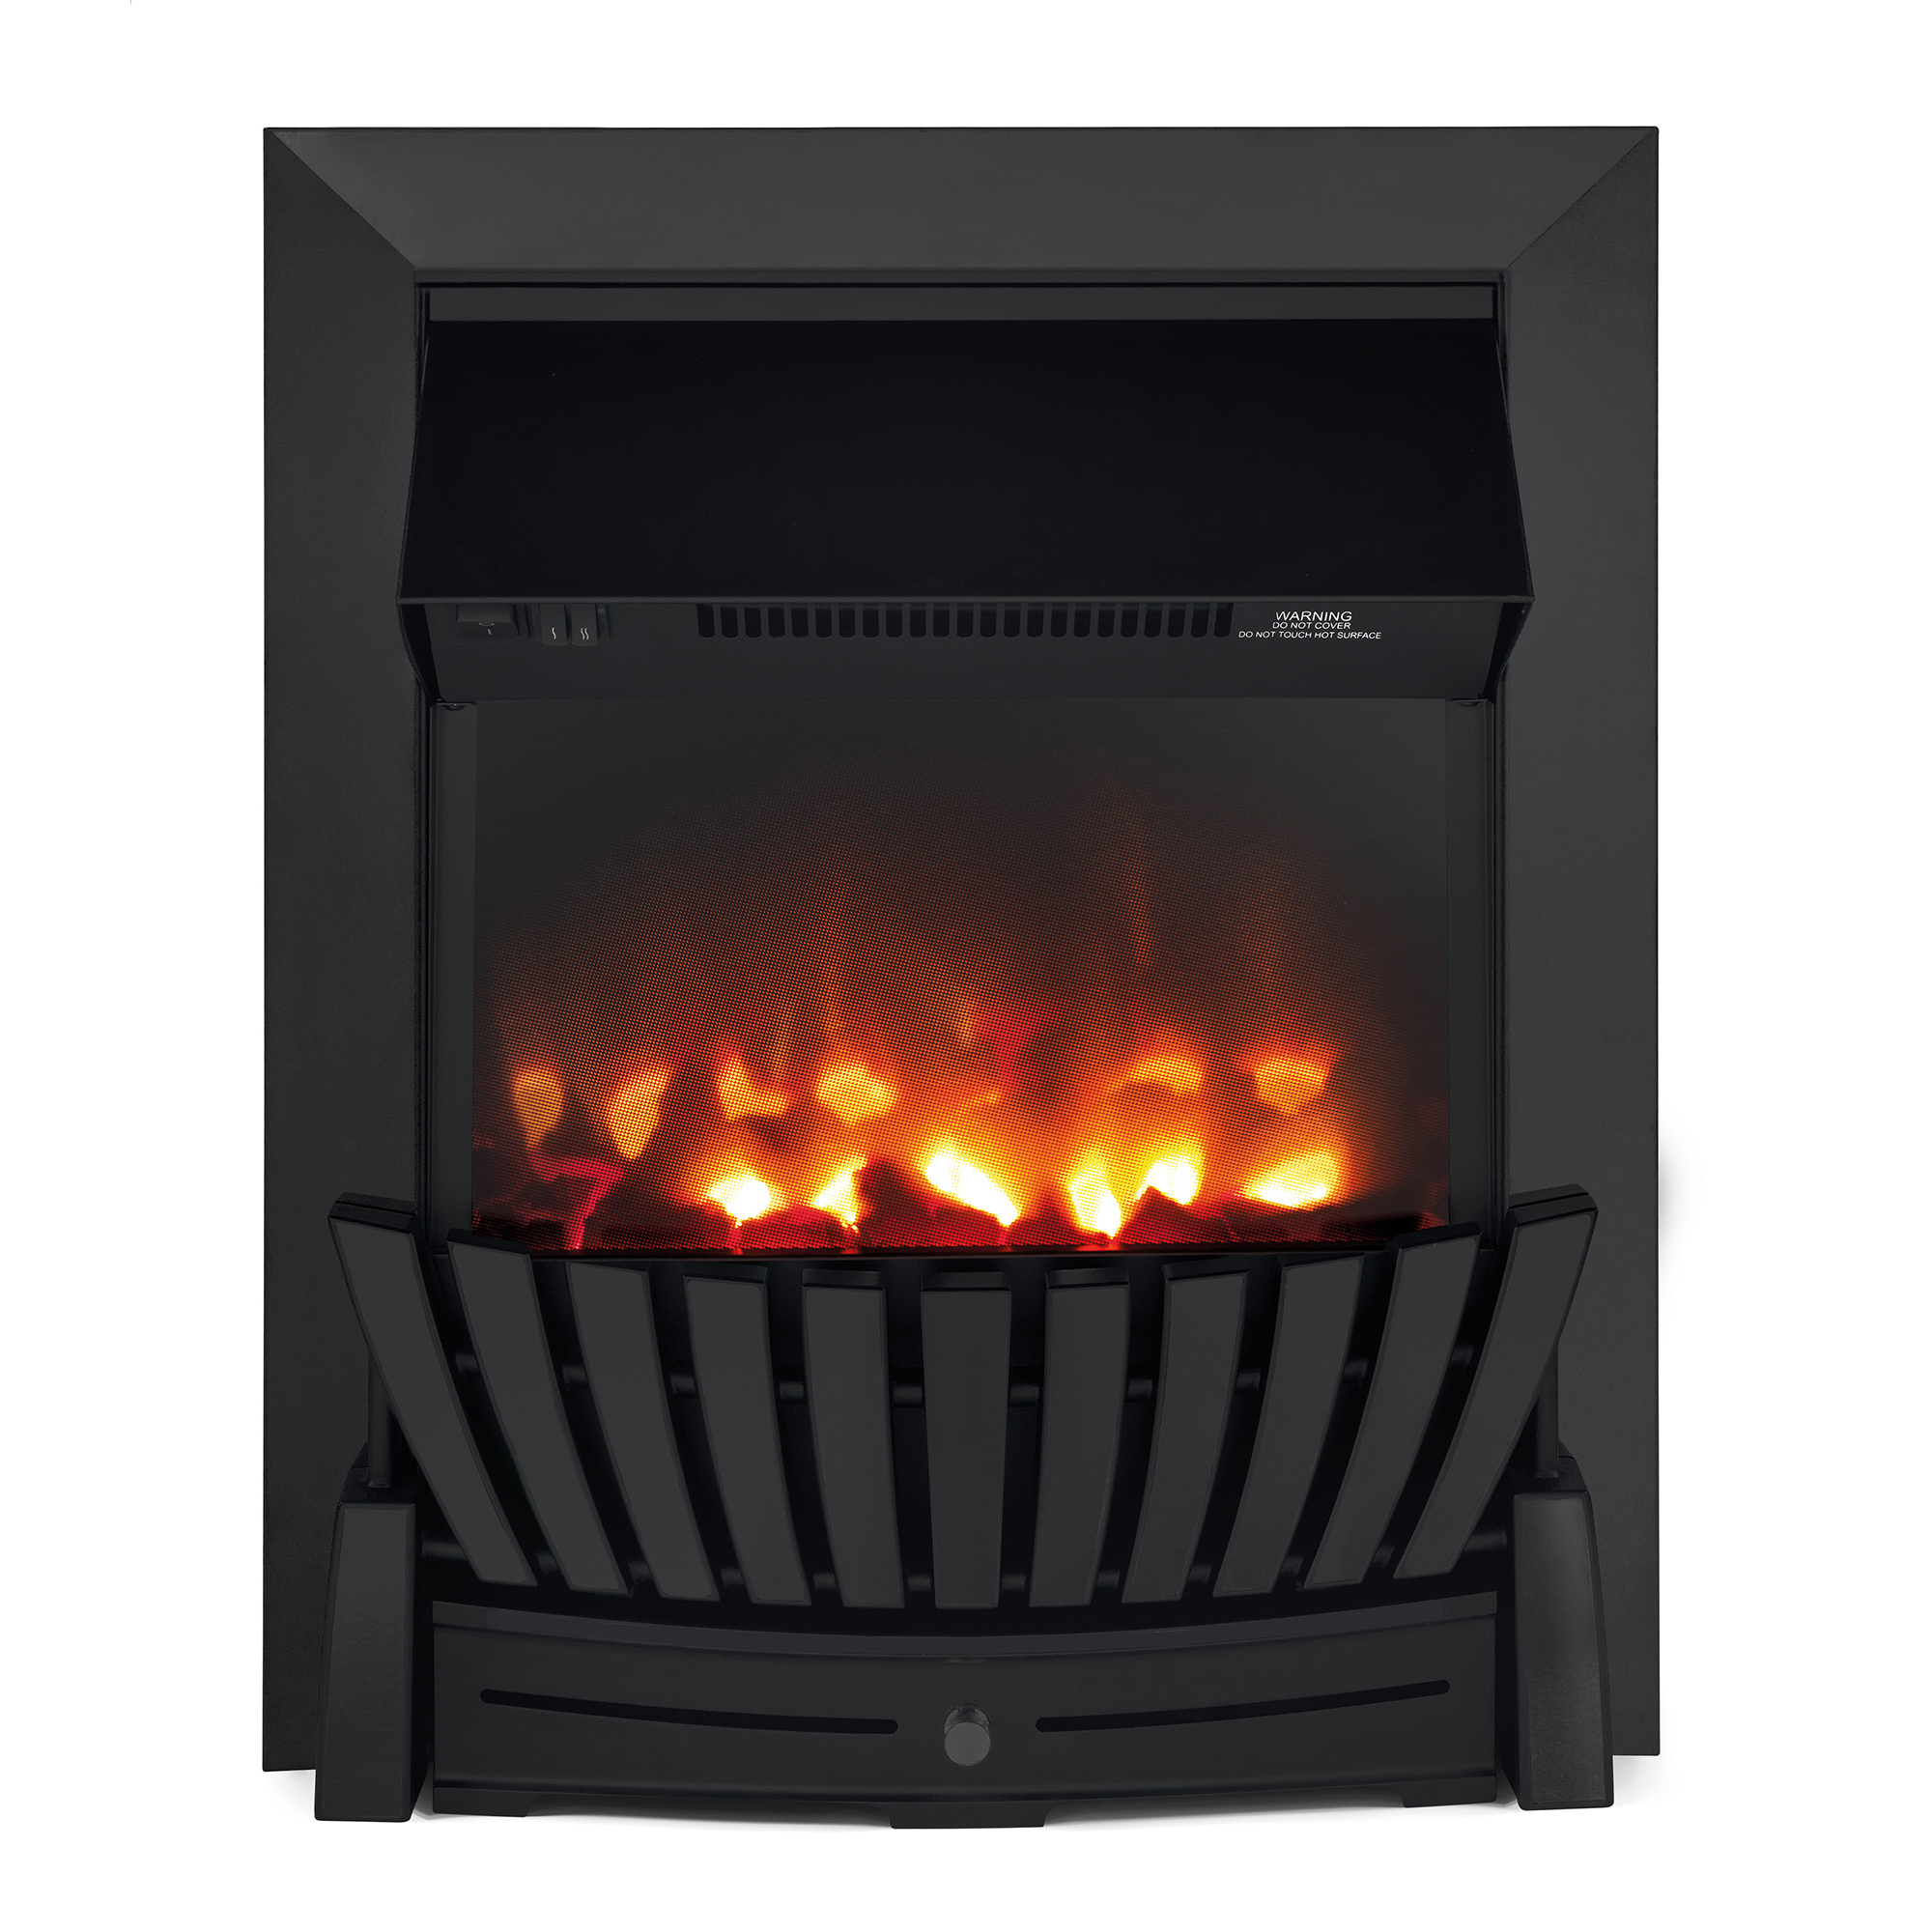 Beldray Almada Inset And Free Standing Electric Fire 2000